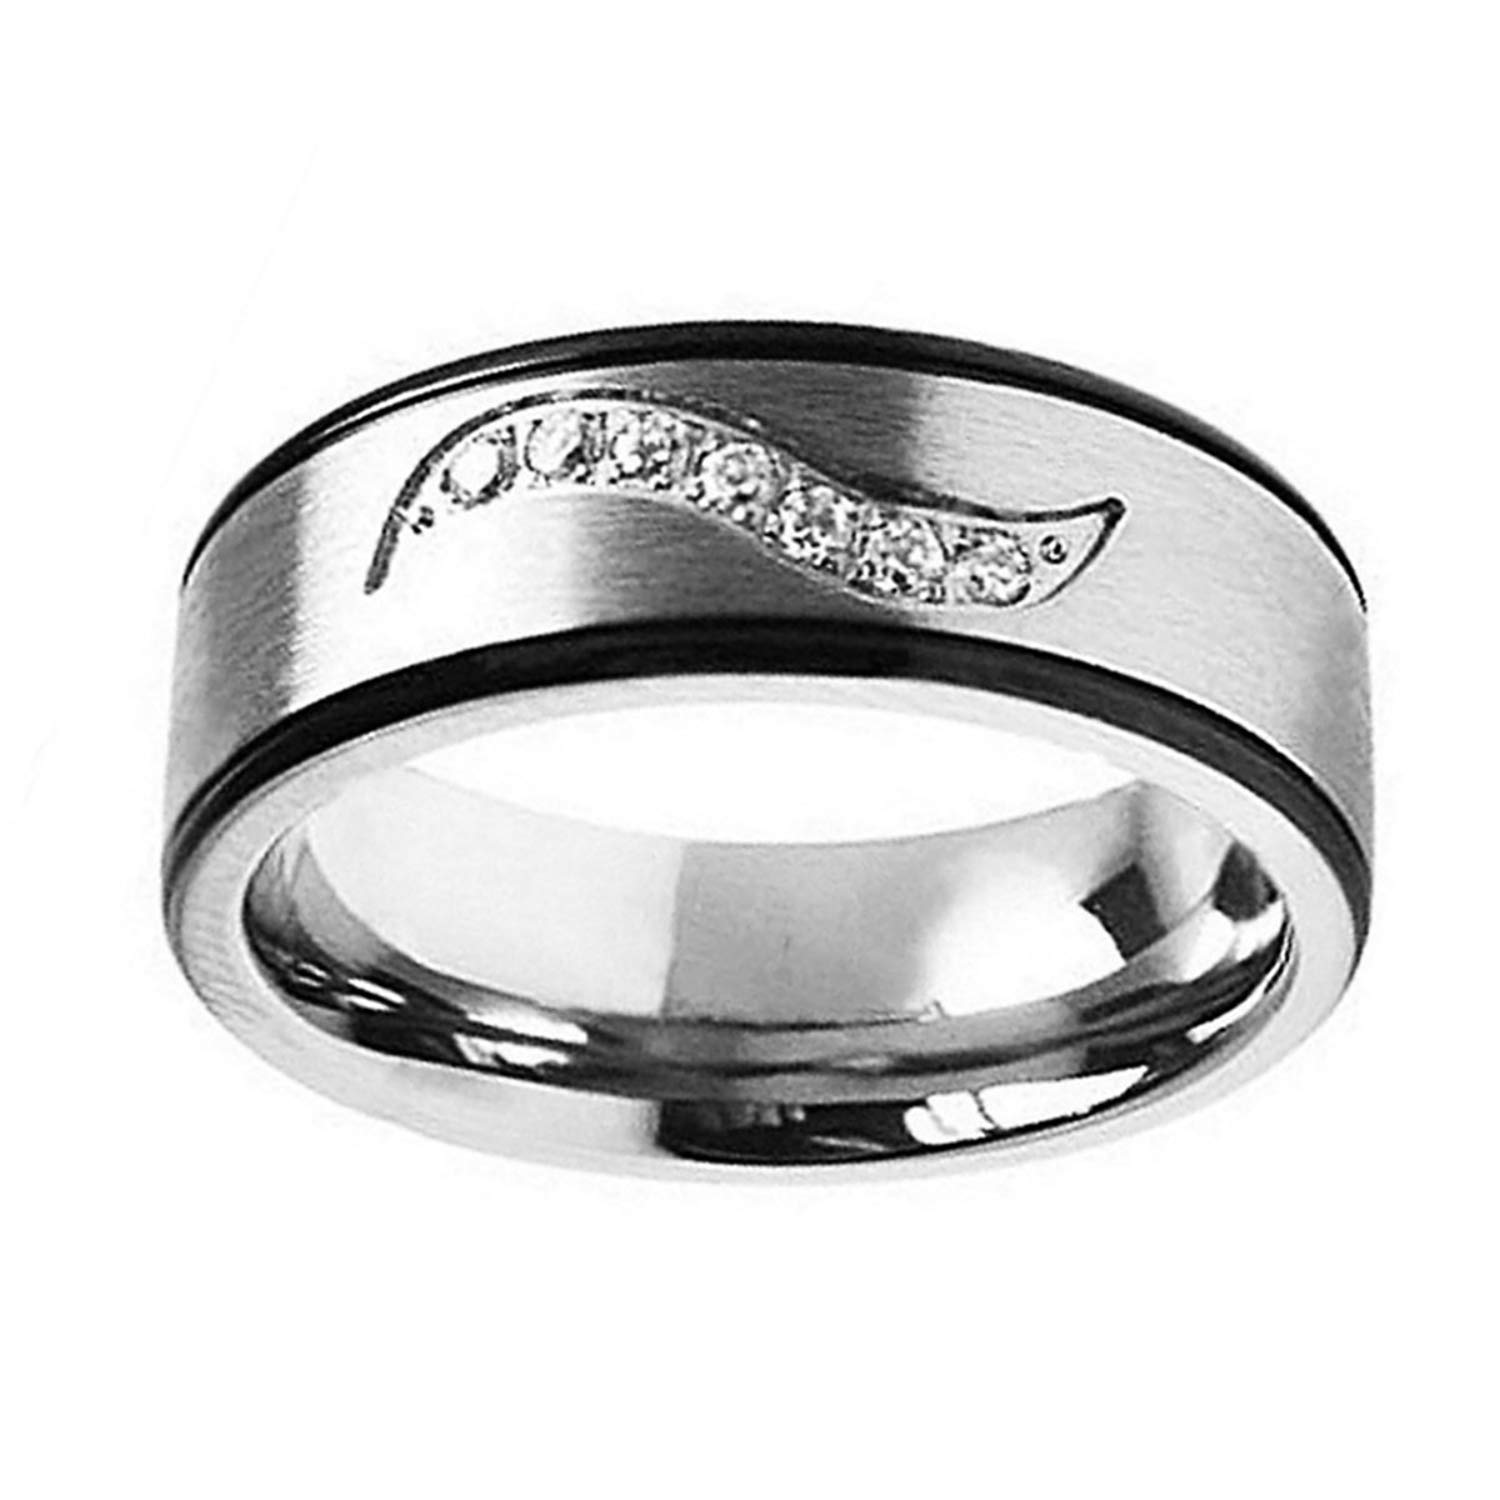 Personalized Inside Engraving Titanium Wedding Band Ring 7mm CZ on Wave Groove Black Edge Ring